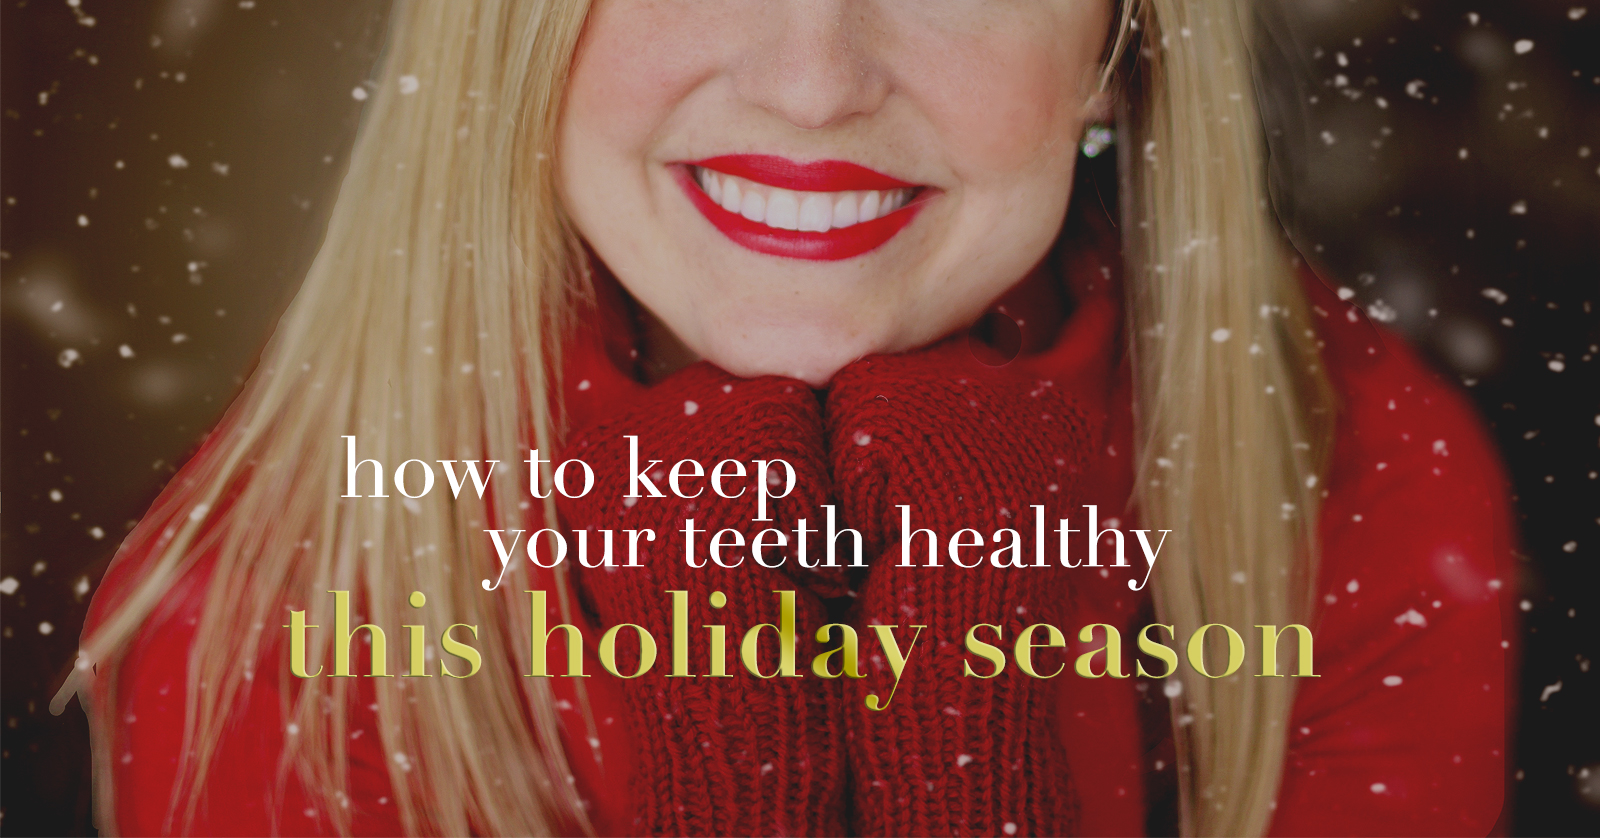 How to Keep Your Teeth Healthy This Holiday Season